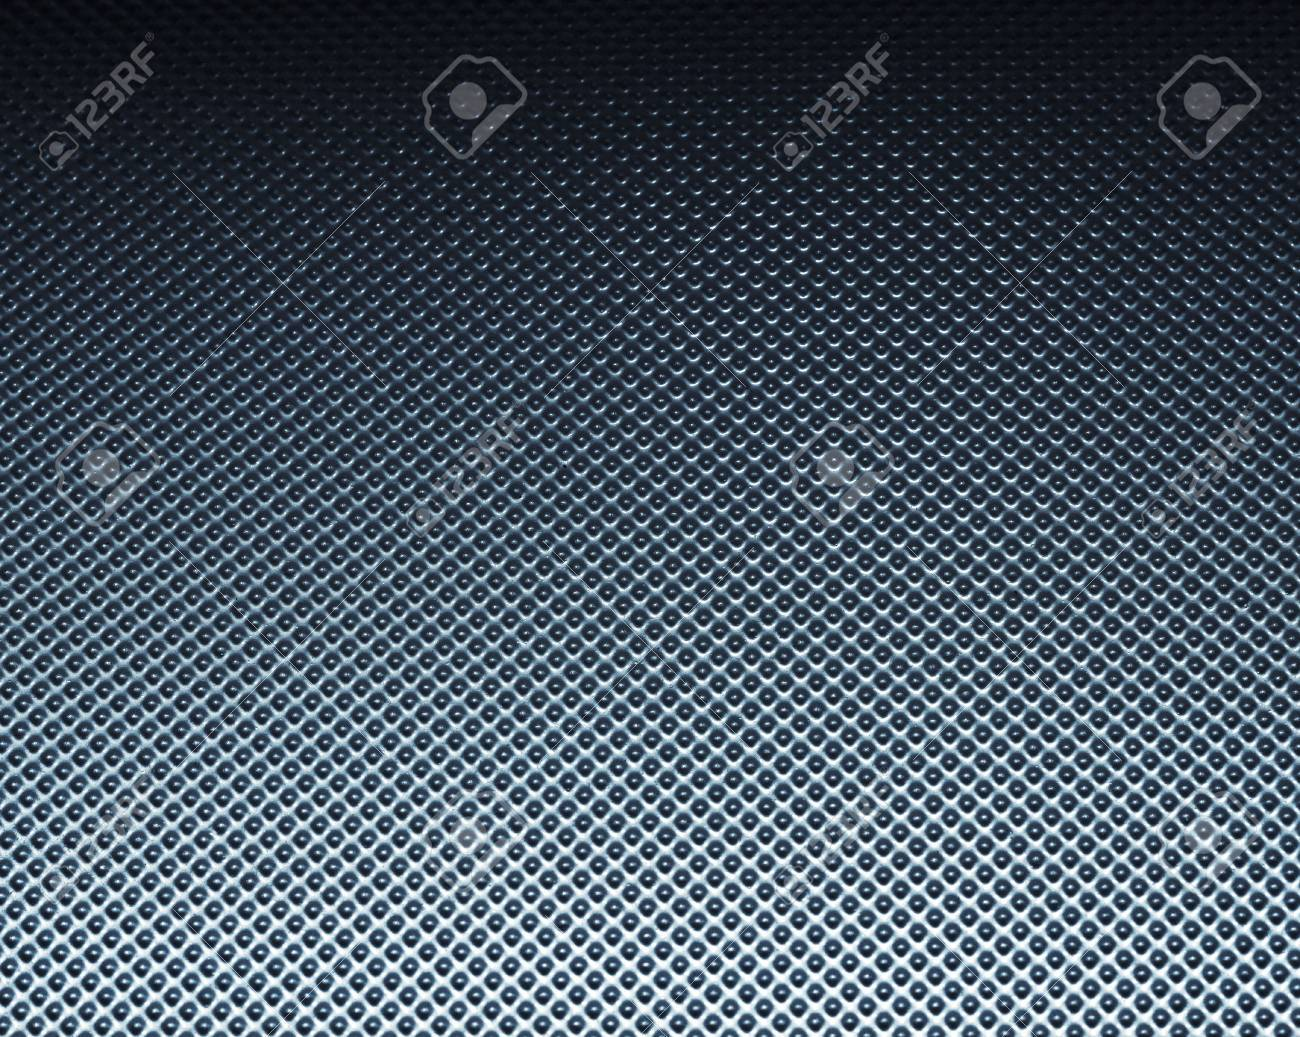 Real engineered metal texture surface background Stock Photo - 11740748